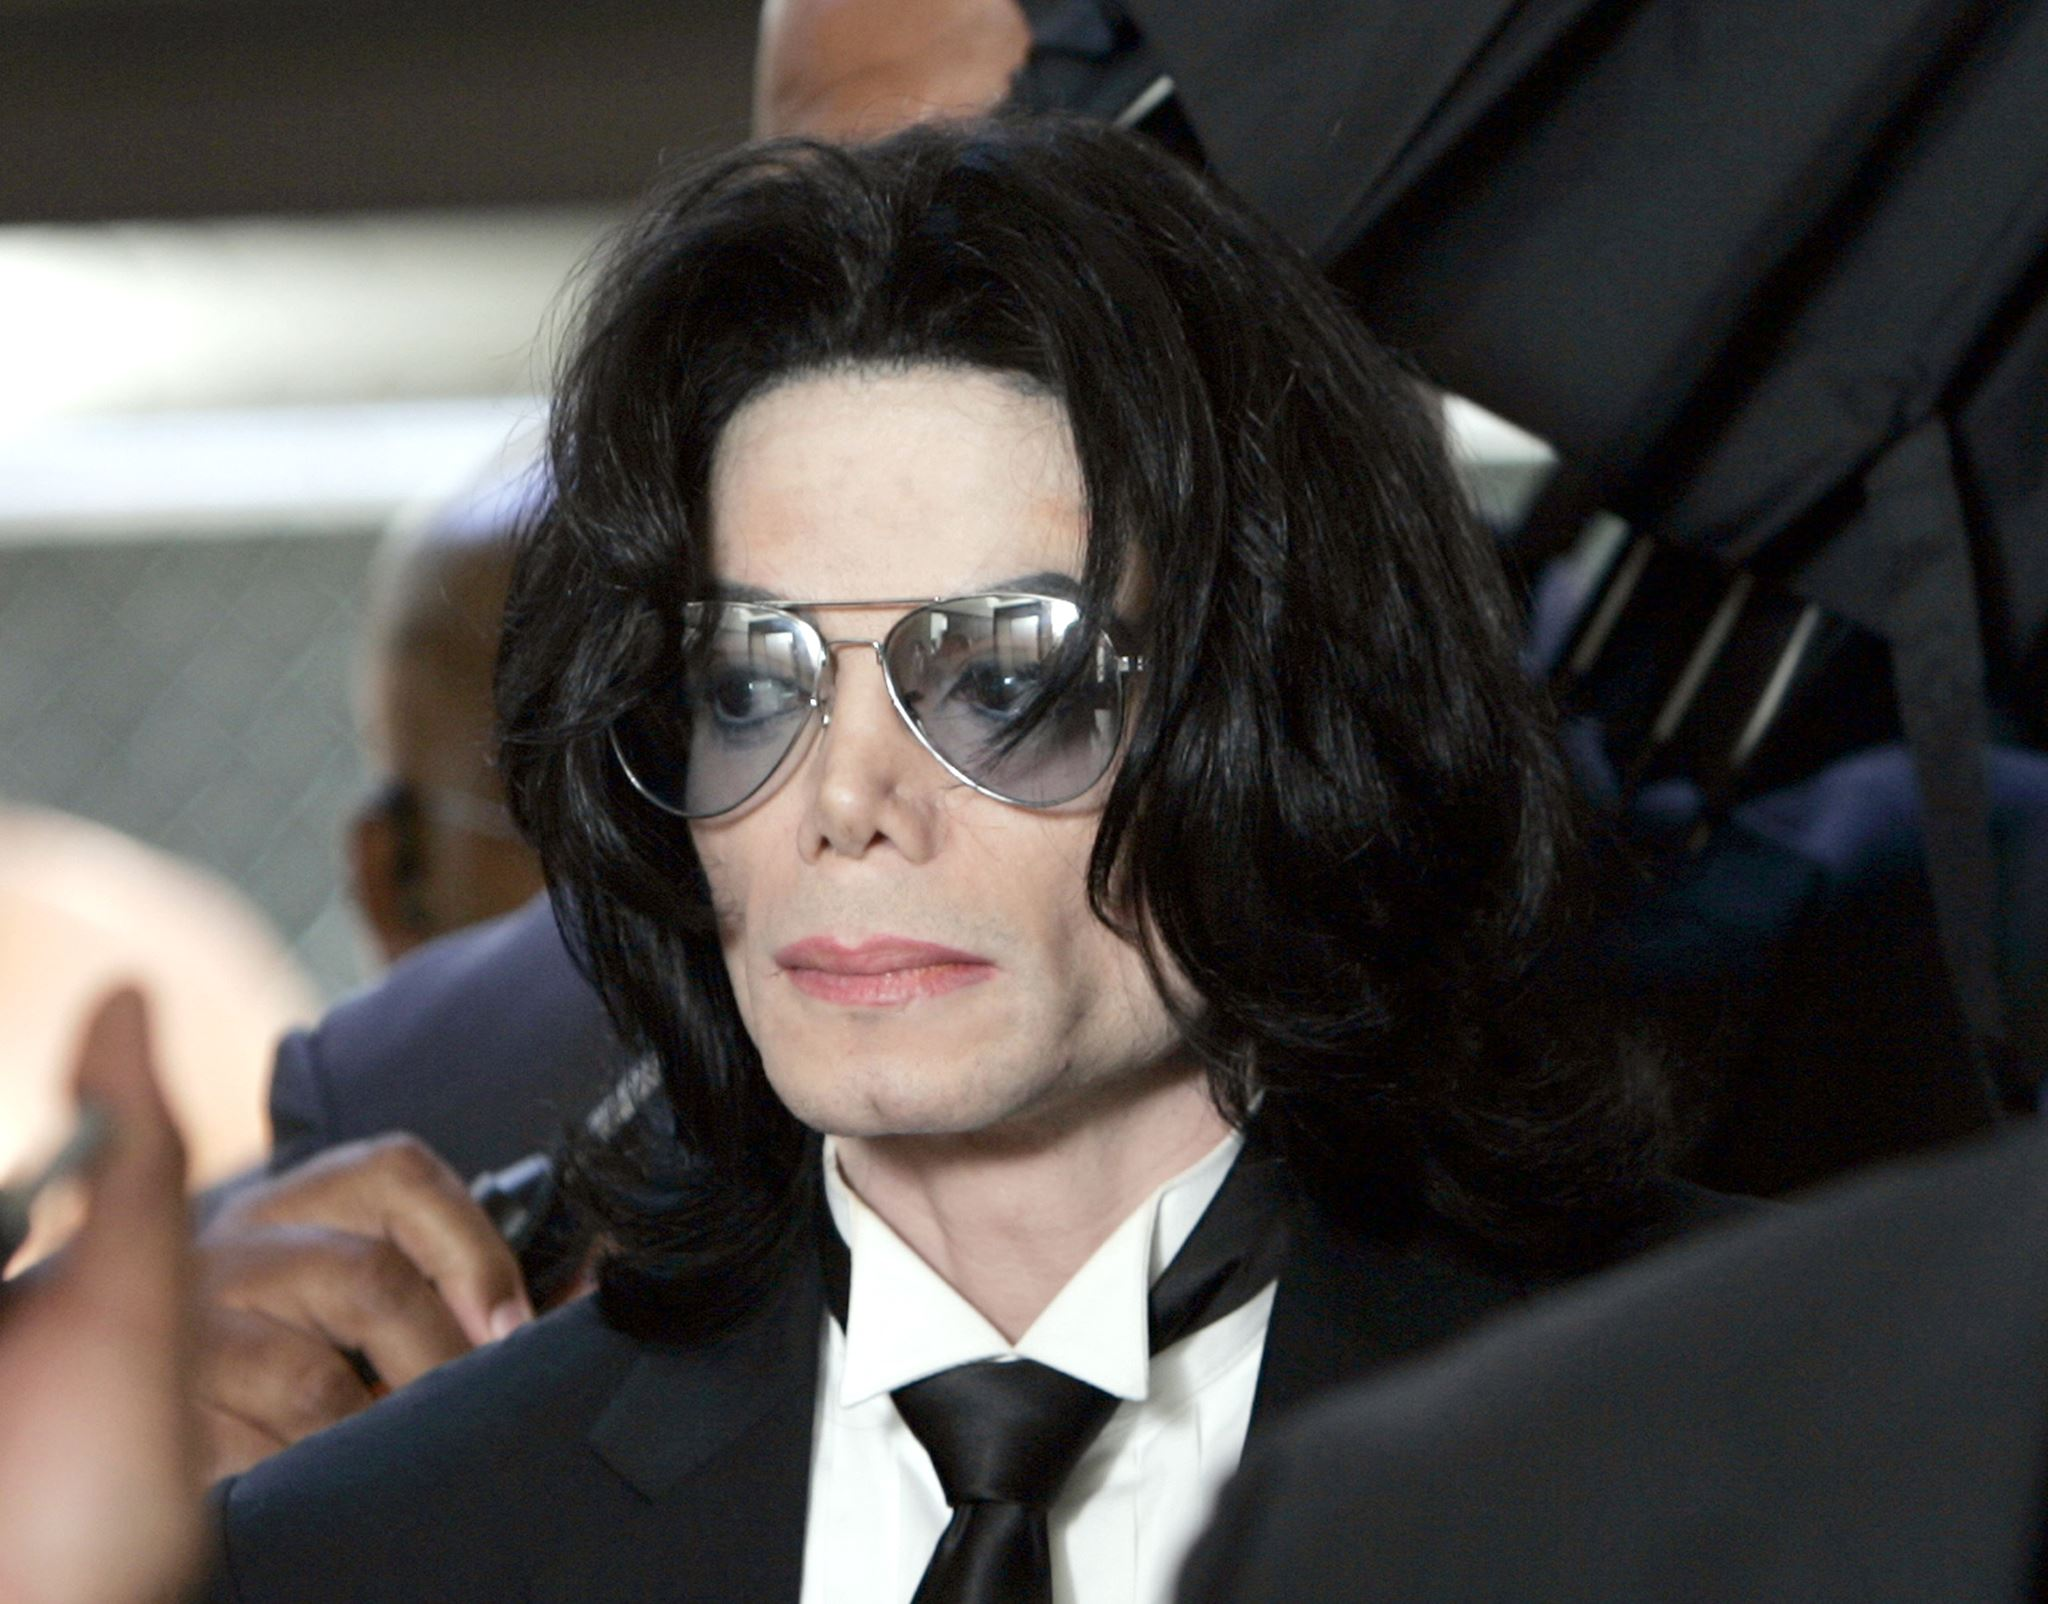 Michael Jackson Victim Makes Shocking Claims About Singer 13699459 10154946100408492 1141285956 o